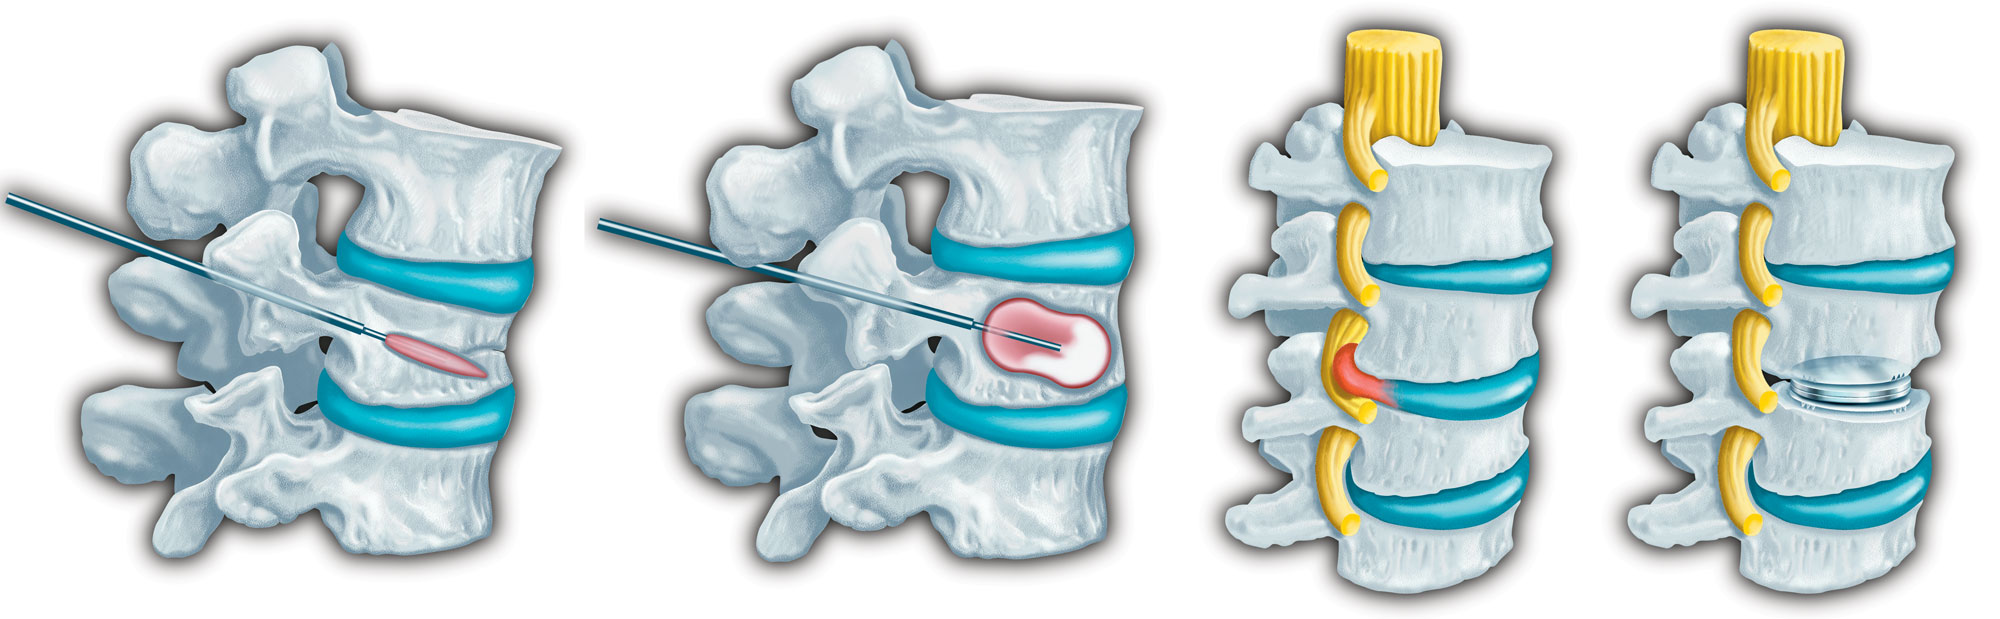 Spine medical illustration